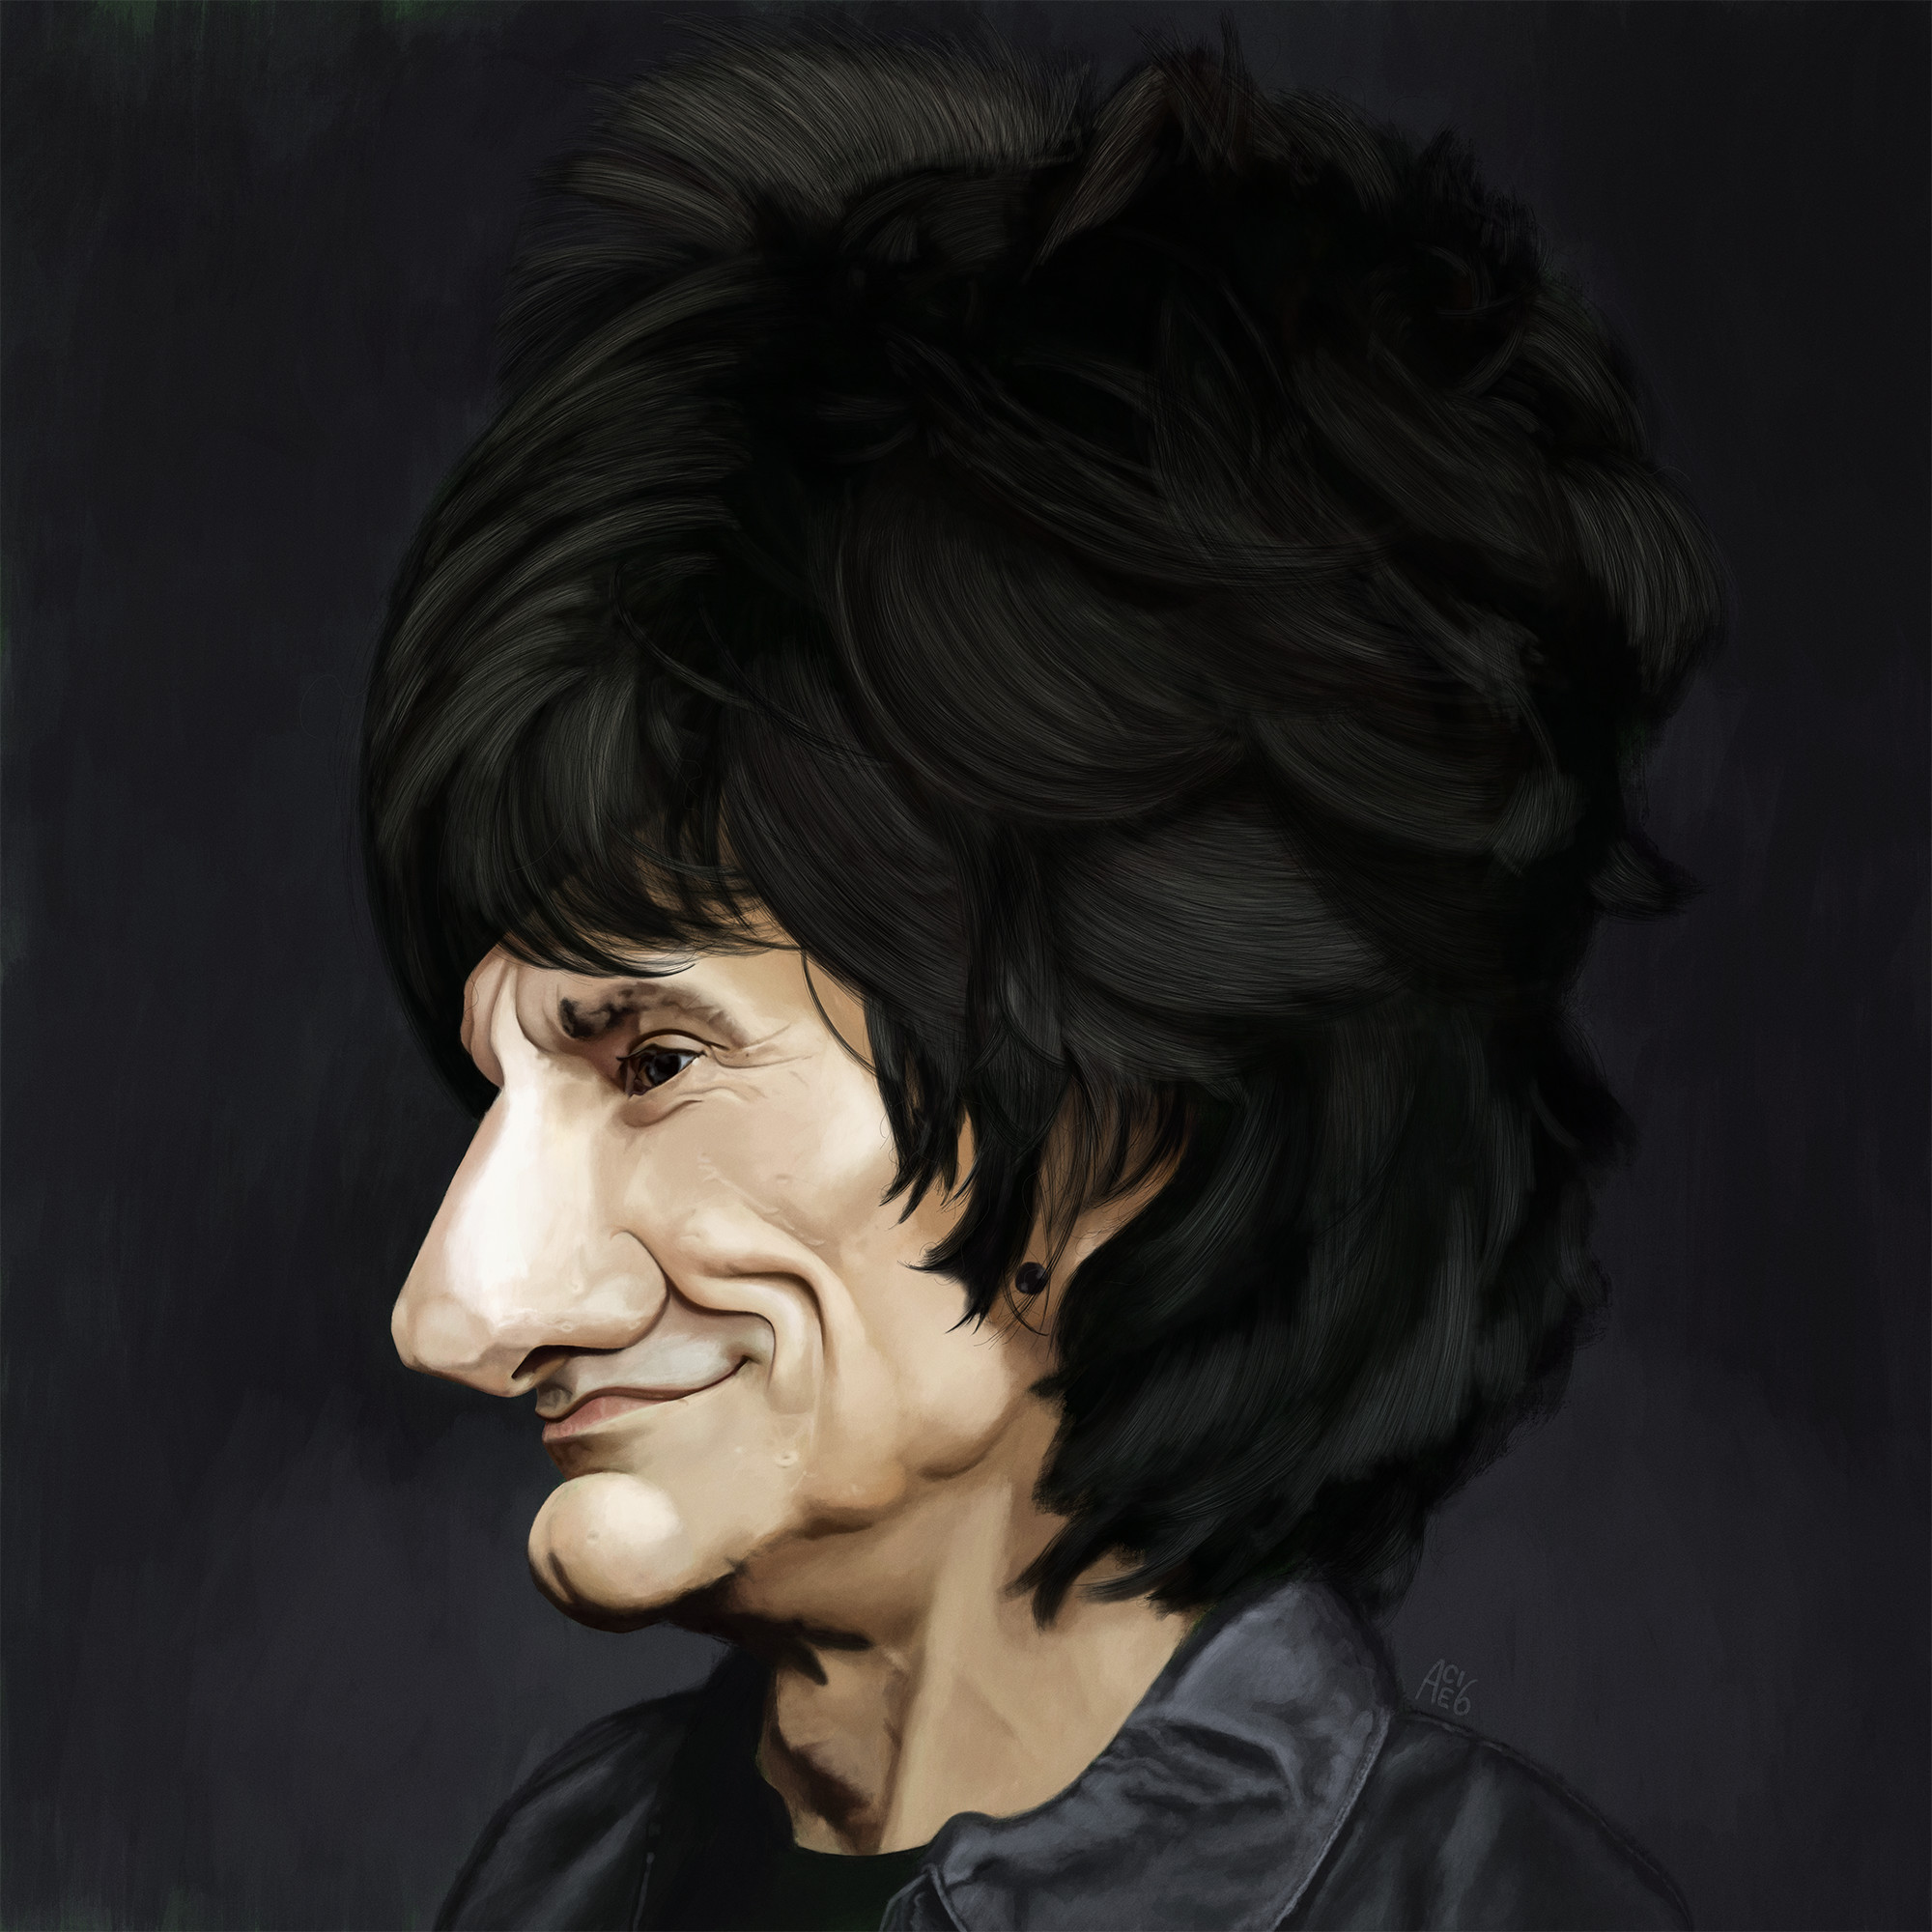 Ace-Connell-Ronnie-Wood-Caricature-2000.jpg